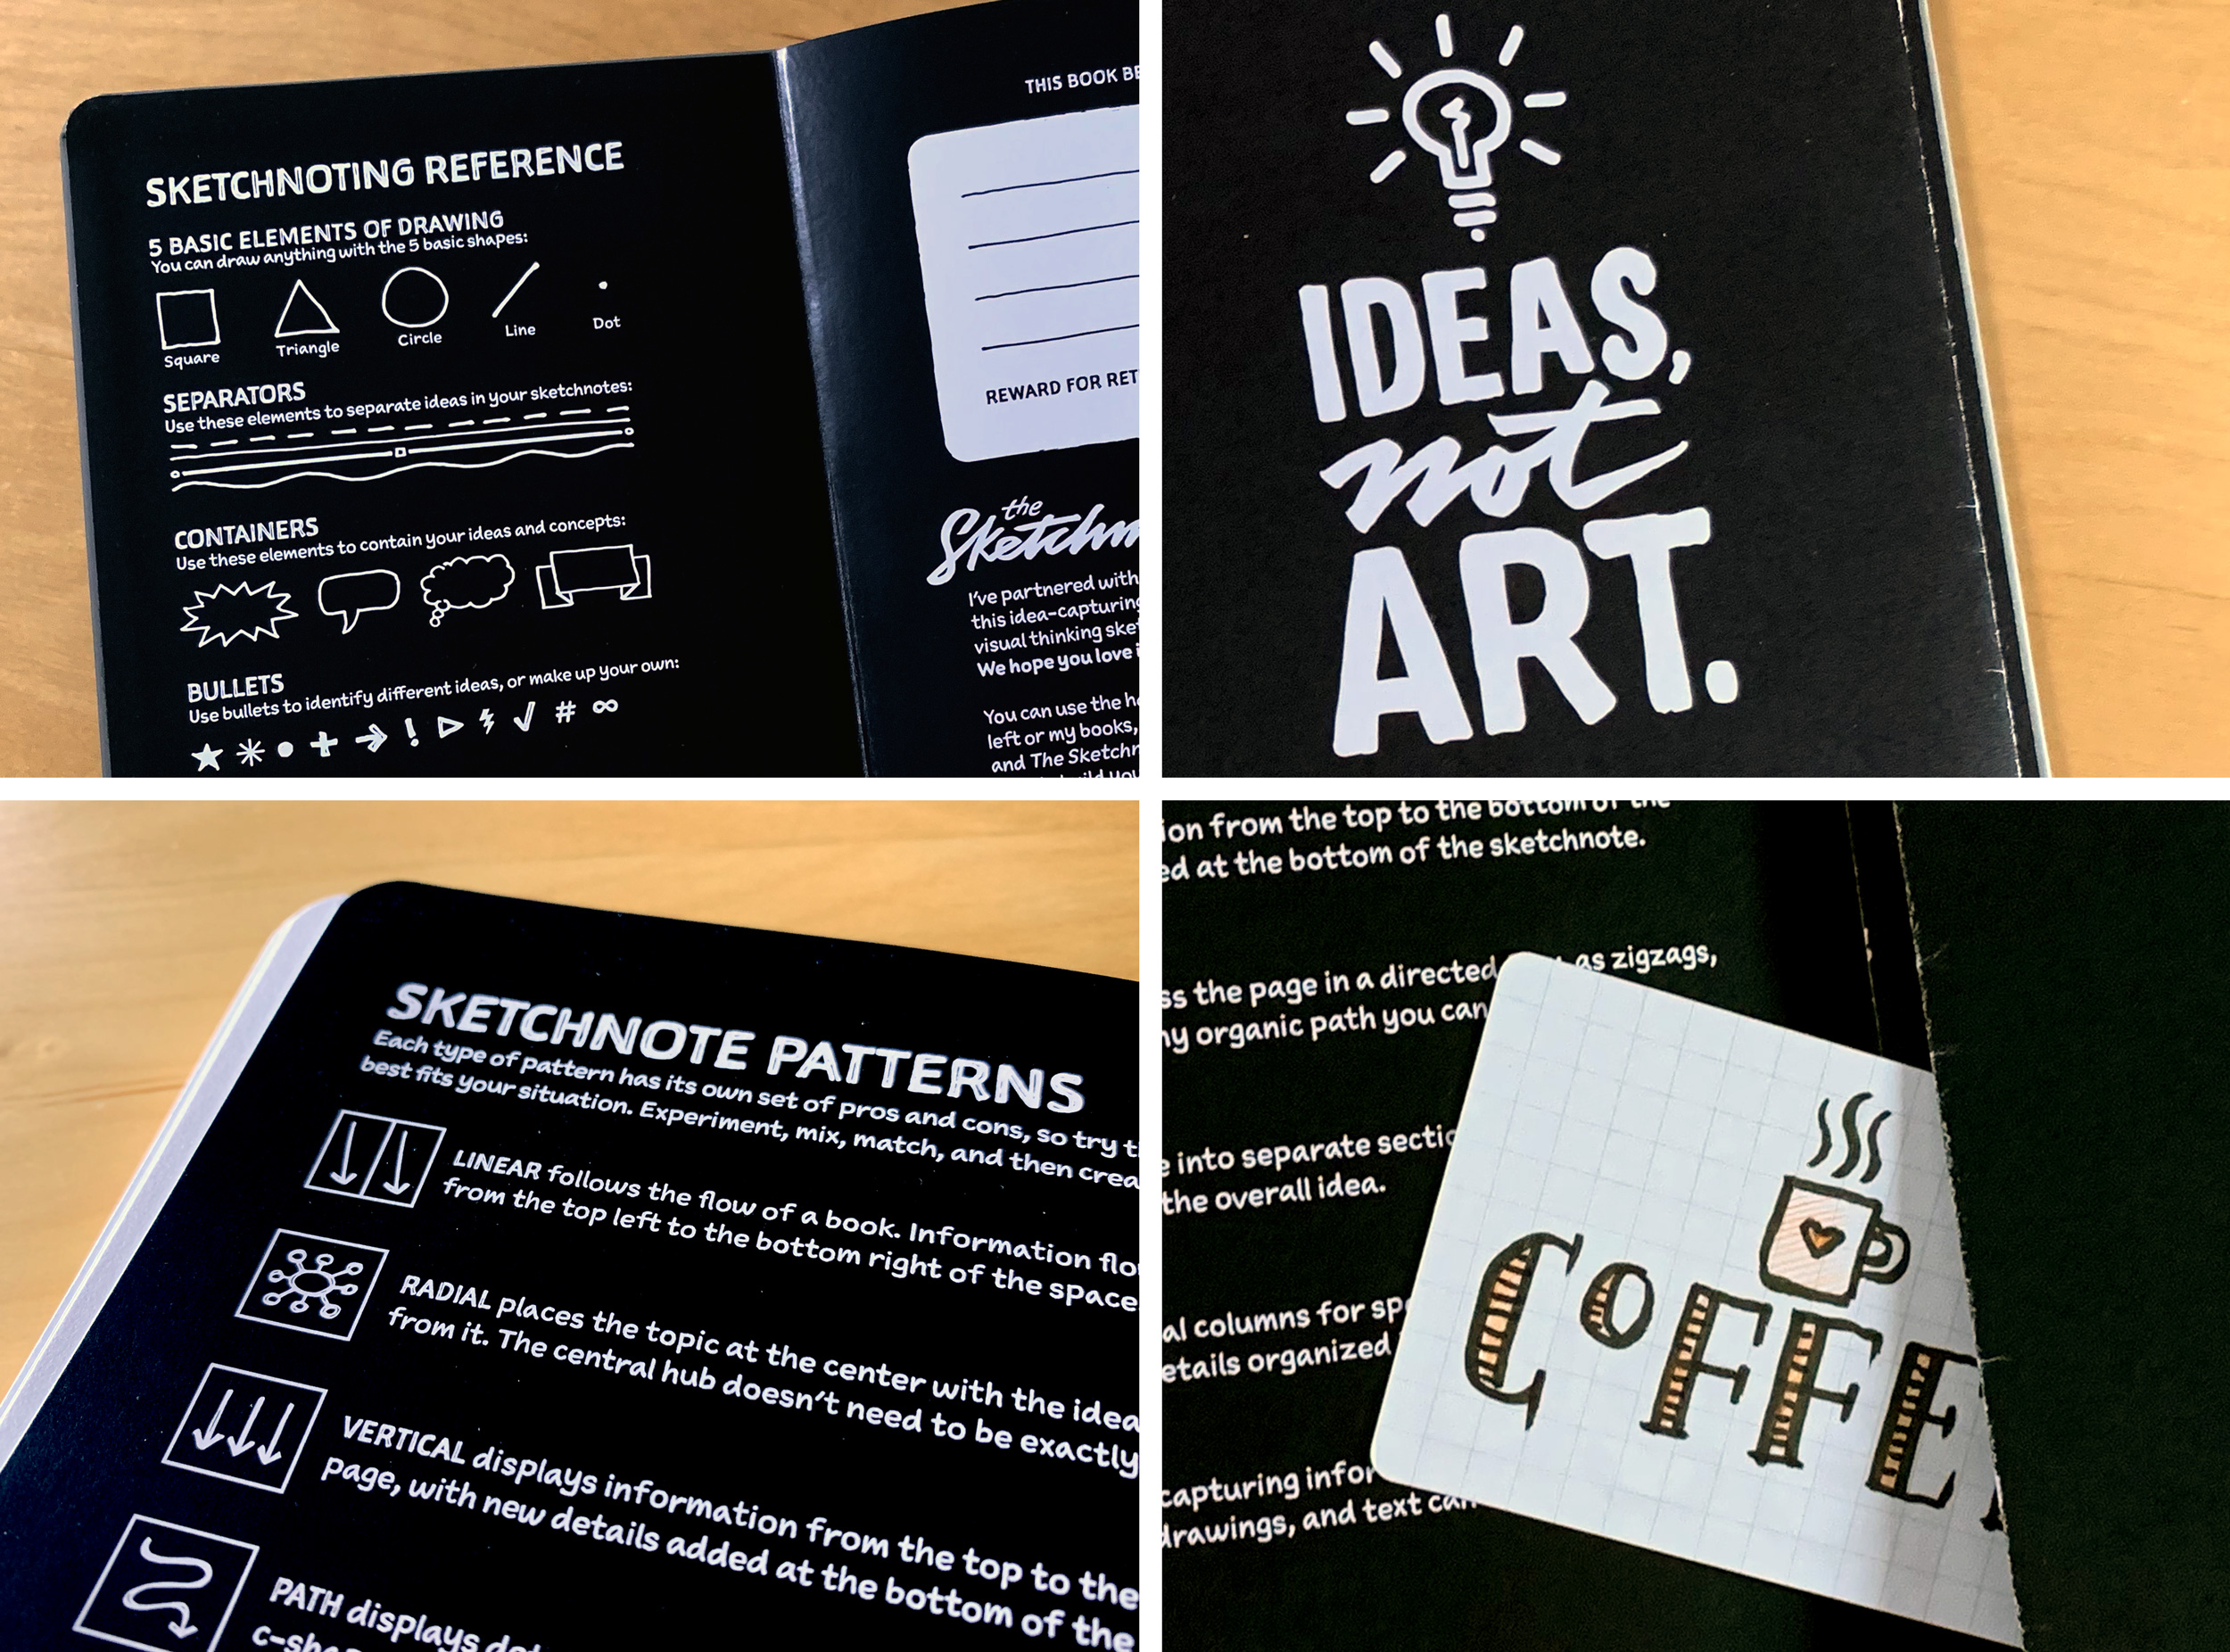 The inside front cover of the Sketchnote Ideabook features sketchnoting reference guides and a place to make the book your own.